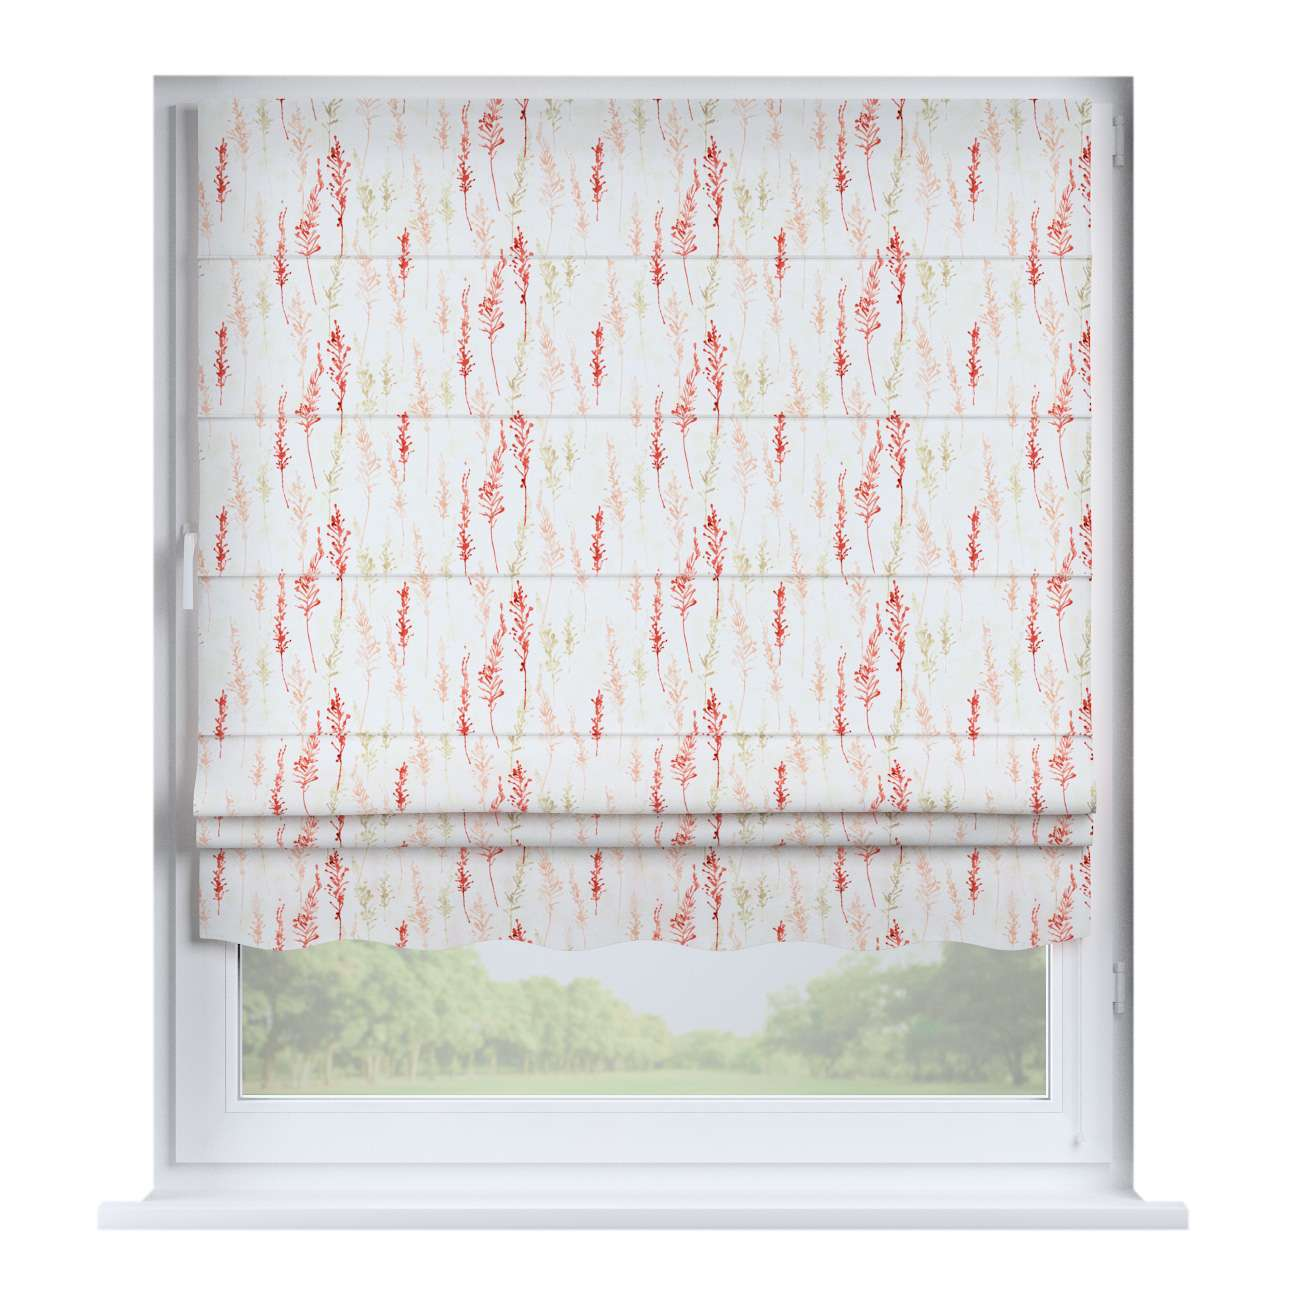 Florence roman blind  80 x 170 cm (31.5 x 67 inch) in collection Acapulco, fabric: 141-37